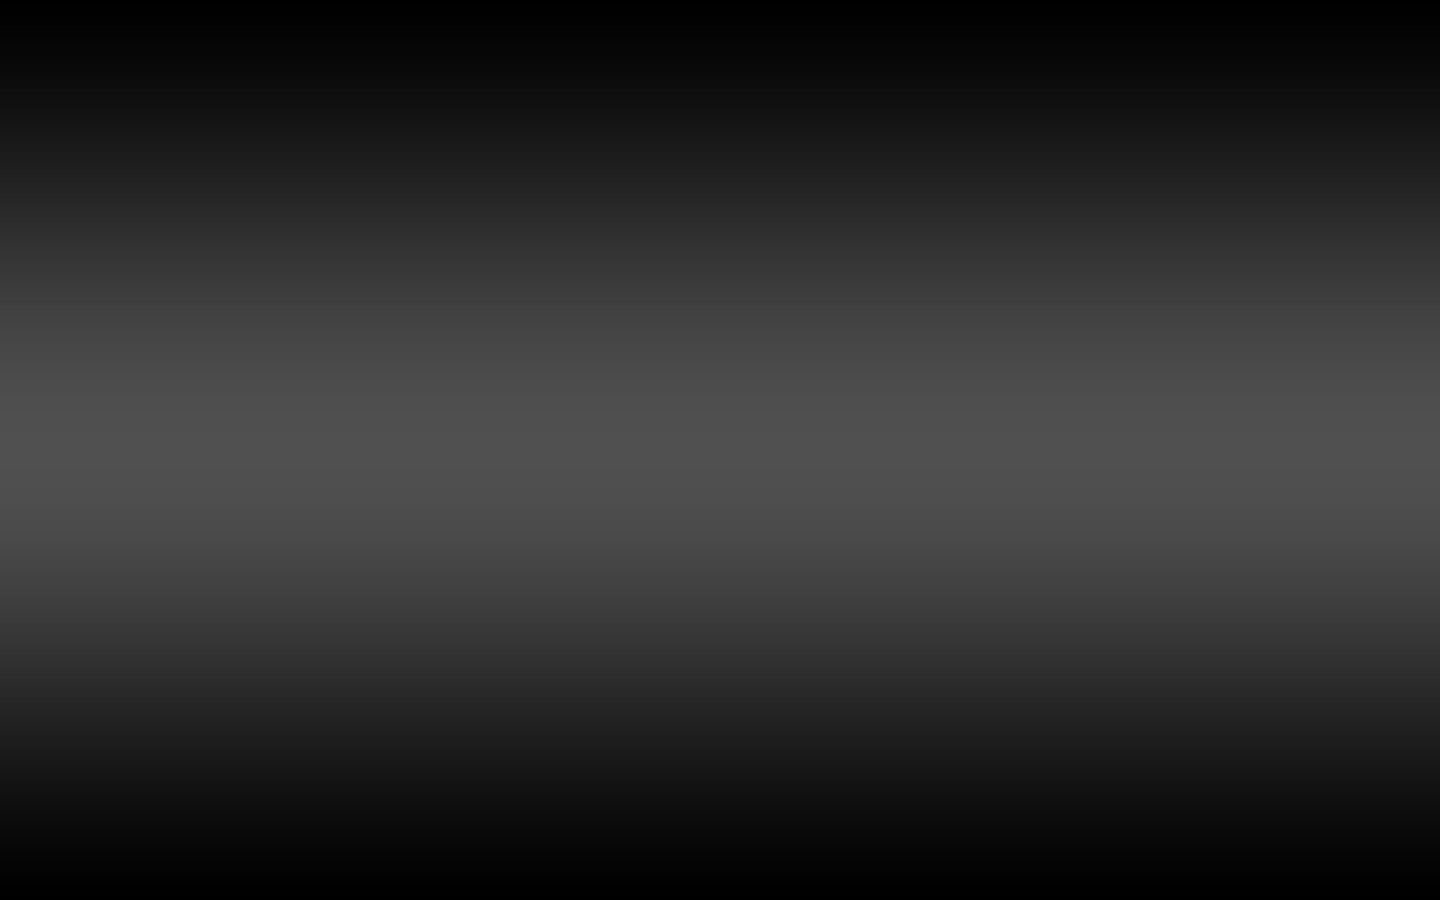 black grey gradient background for website   Website 1440x900